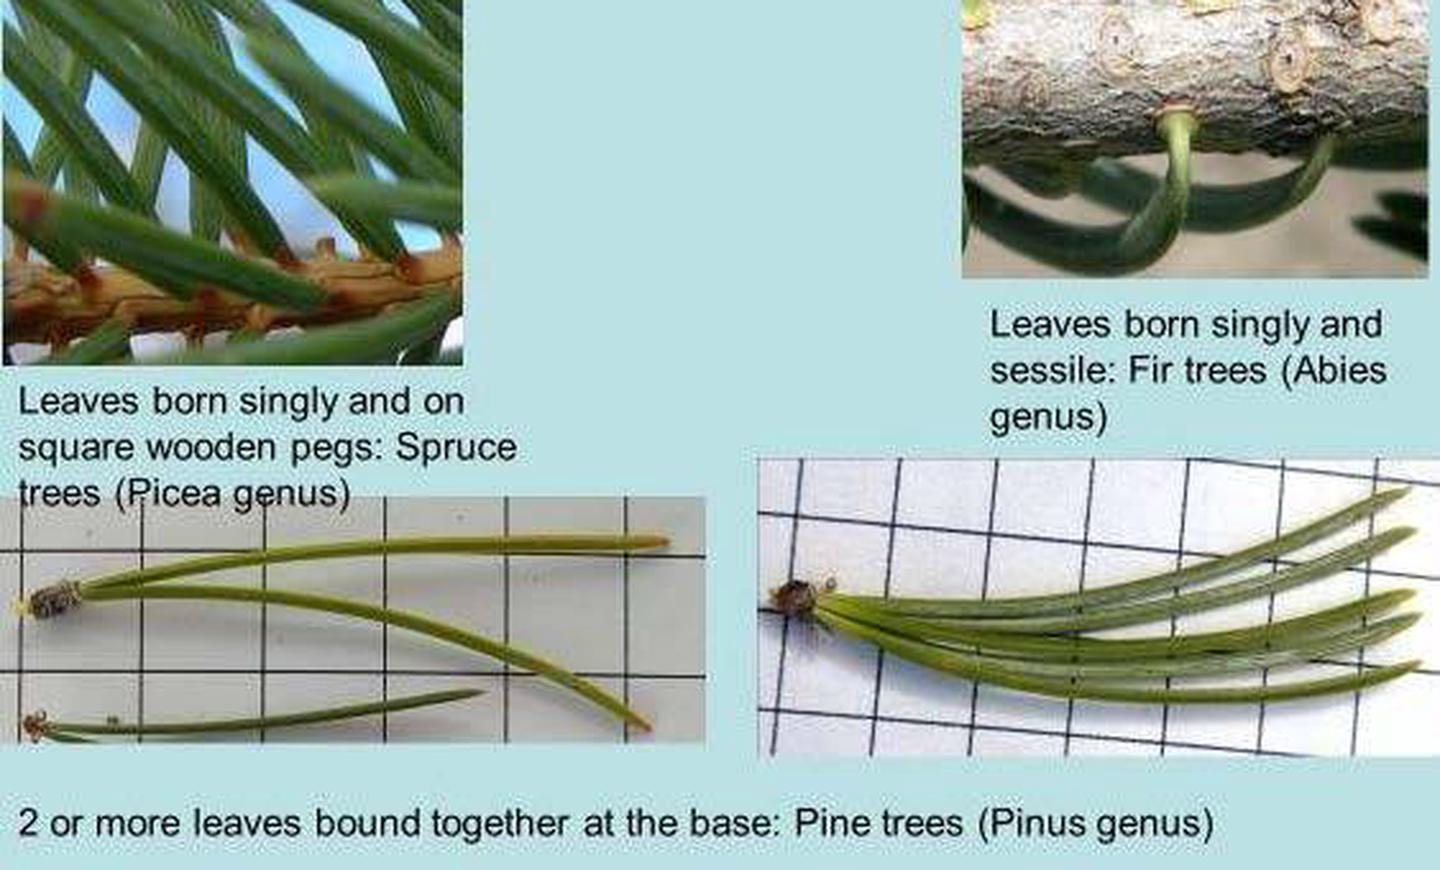 How to id pine, fir and spruce trees by their leaves.